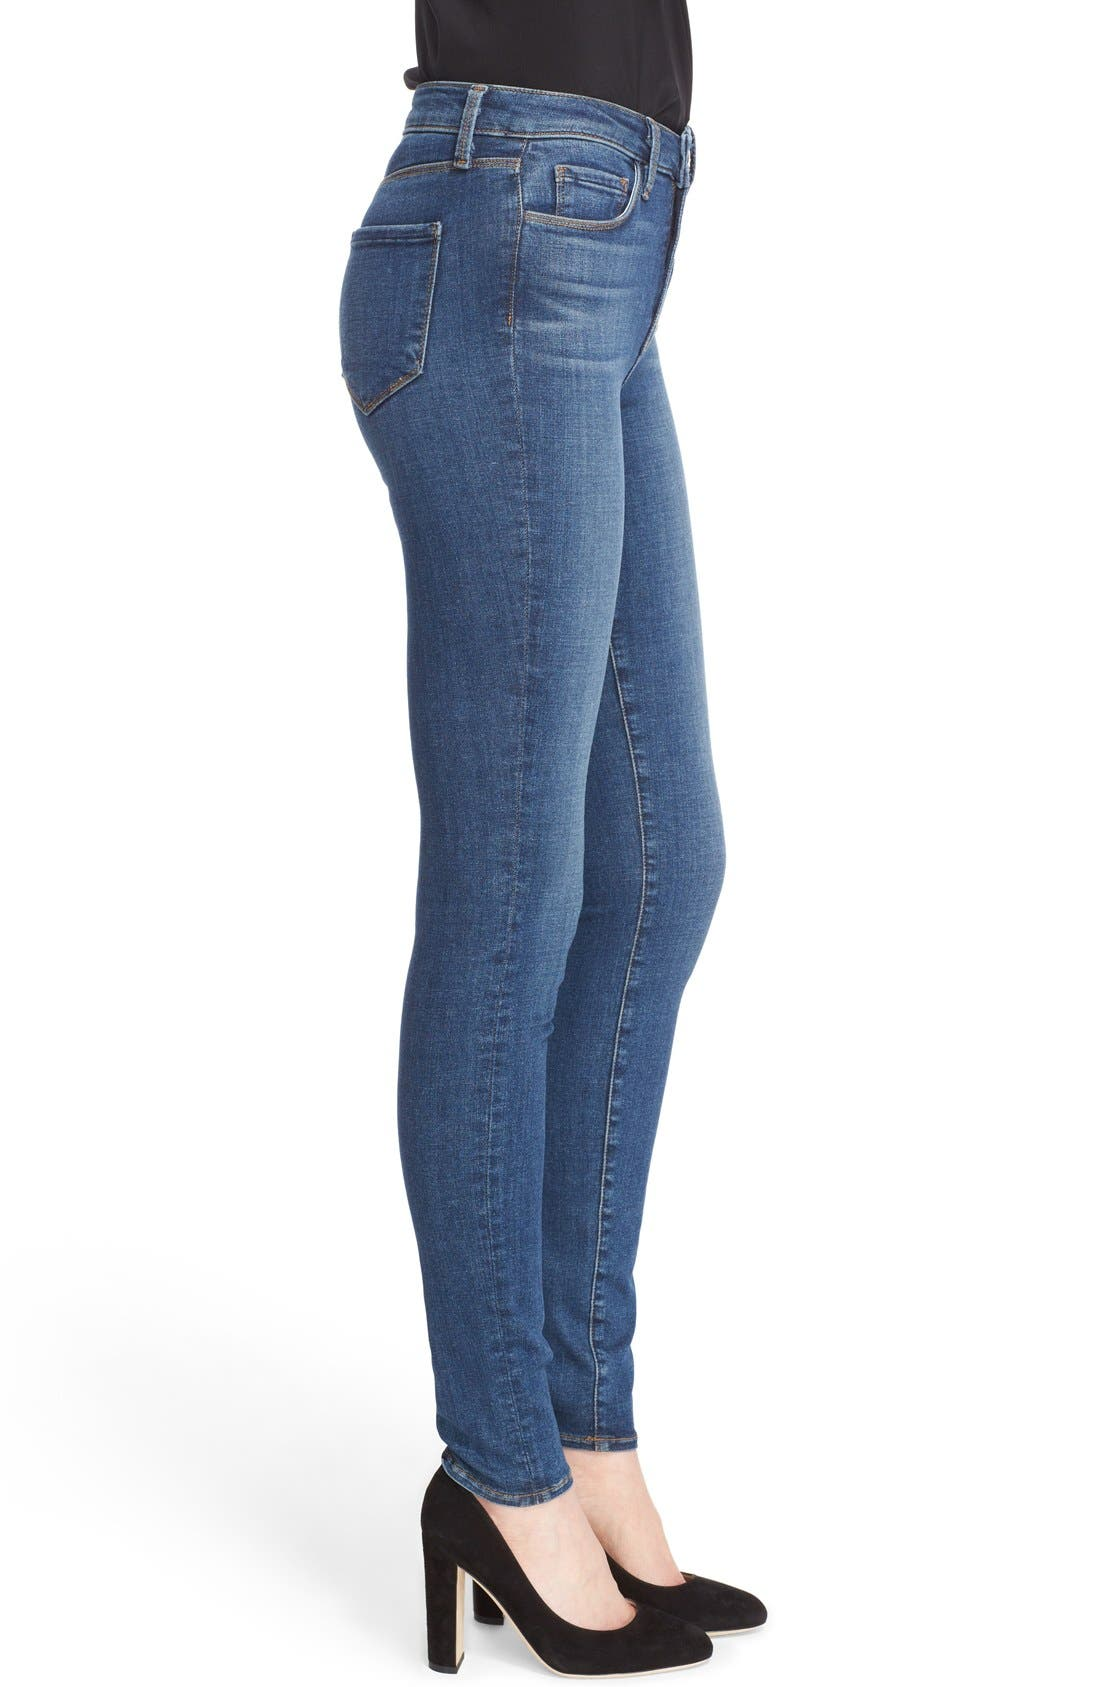 '30' High Rise Skinny Jeans,                             Alternate thumbnail 2, color,                             DARK VINTAGE